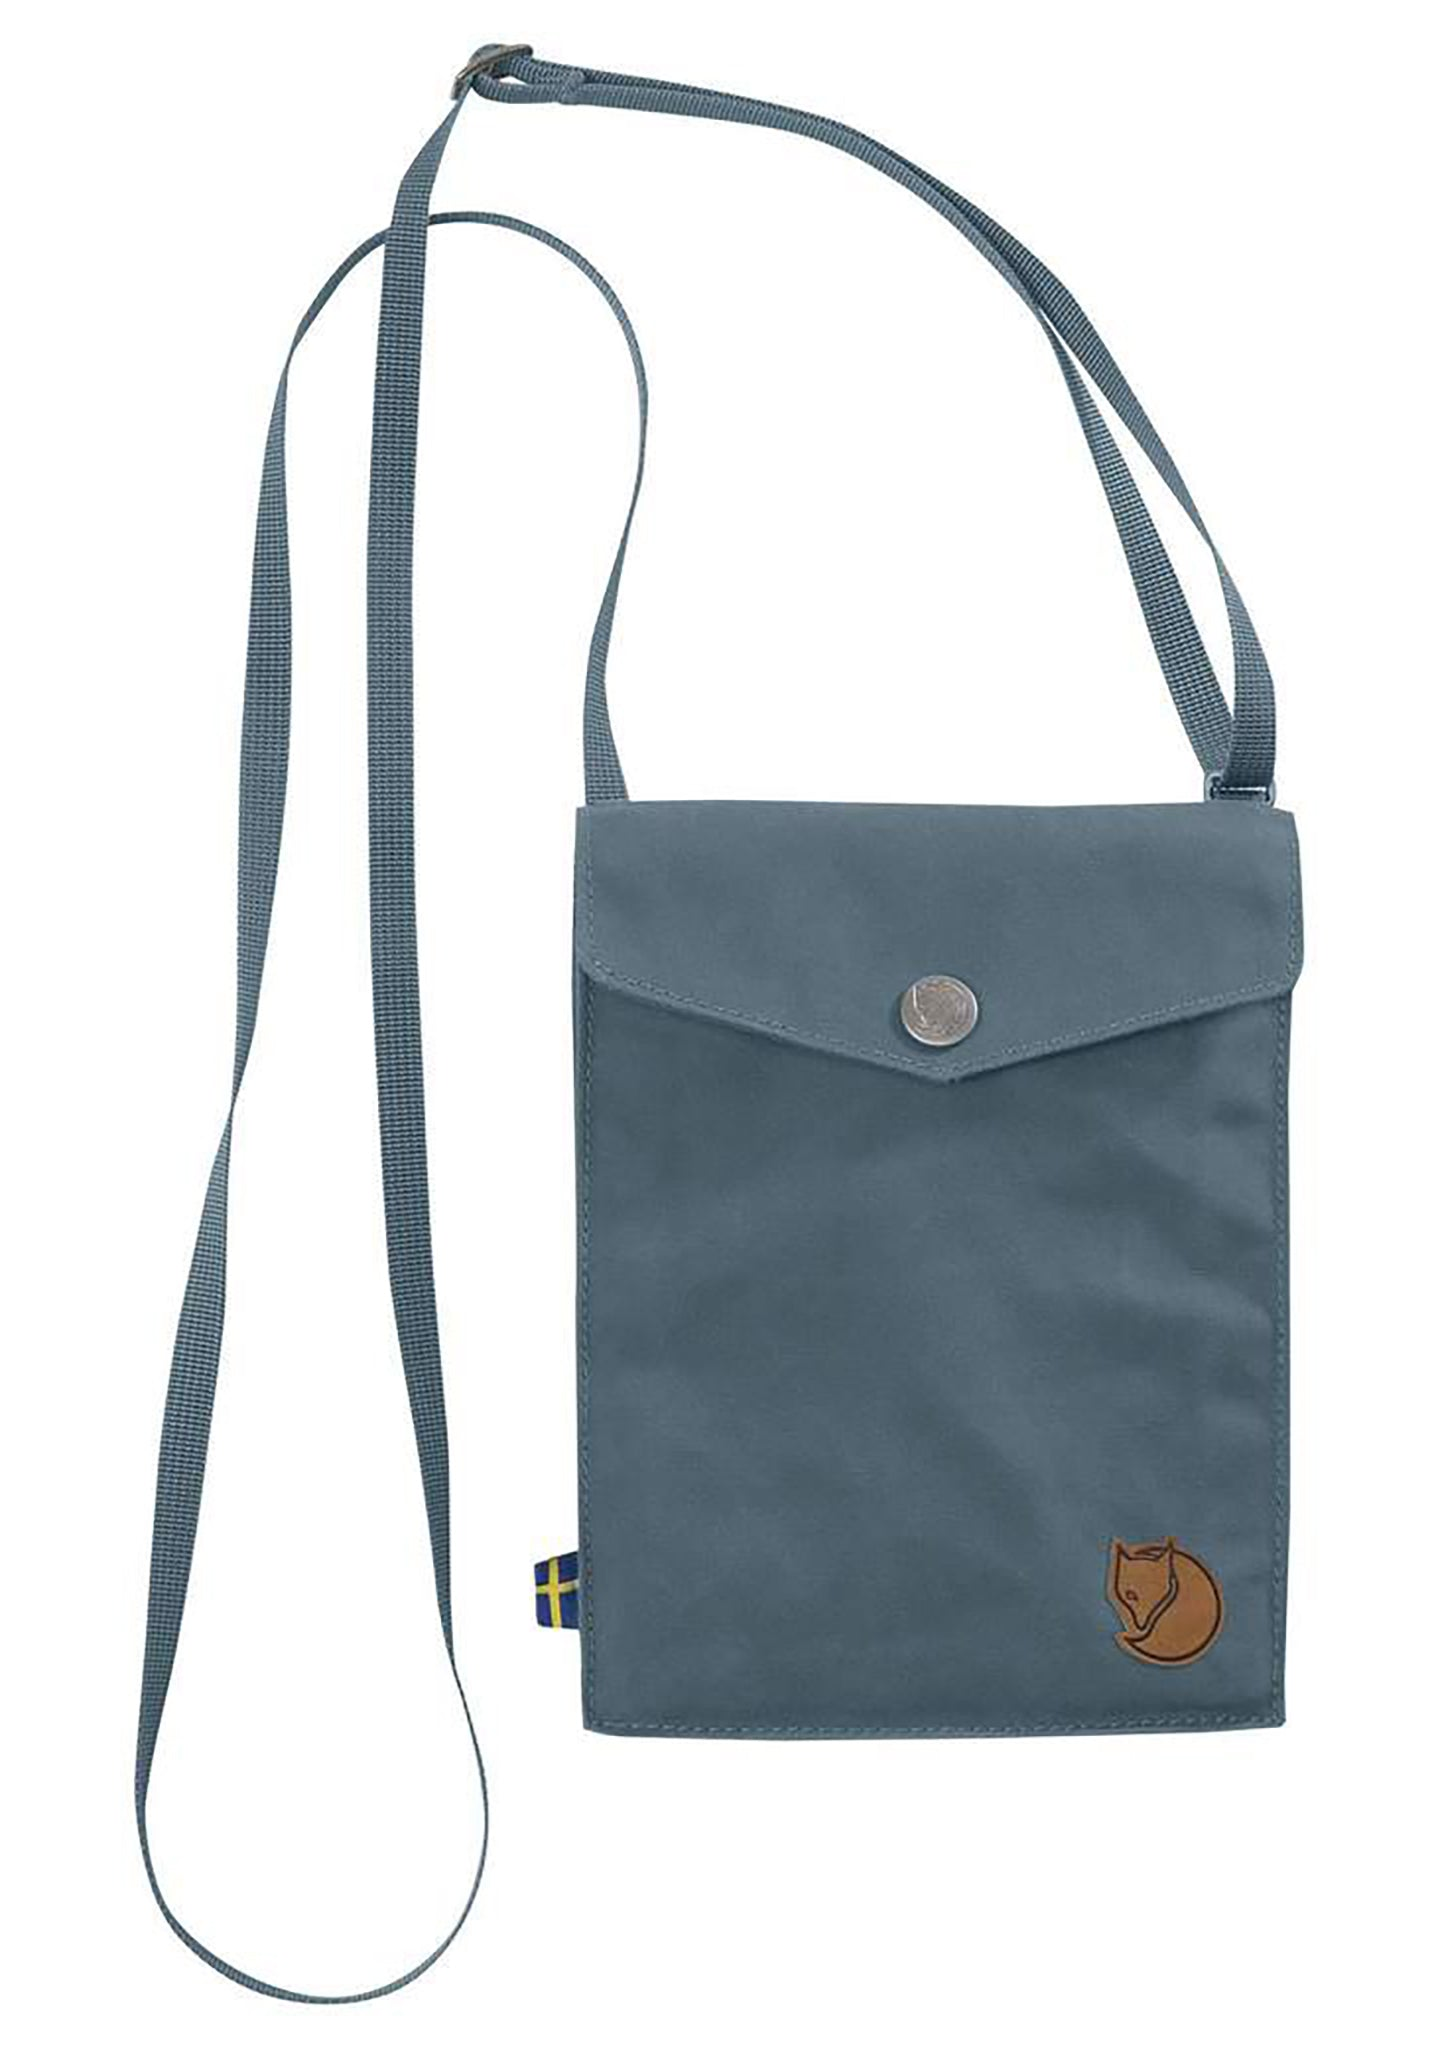 Fjallraven Pocket Crossbody Bag in Dusk